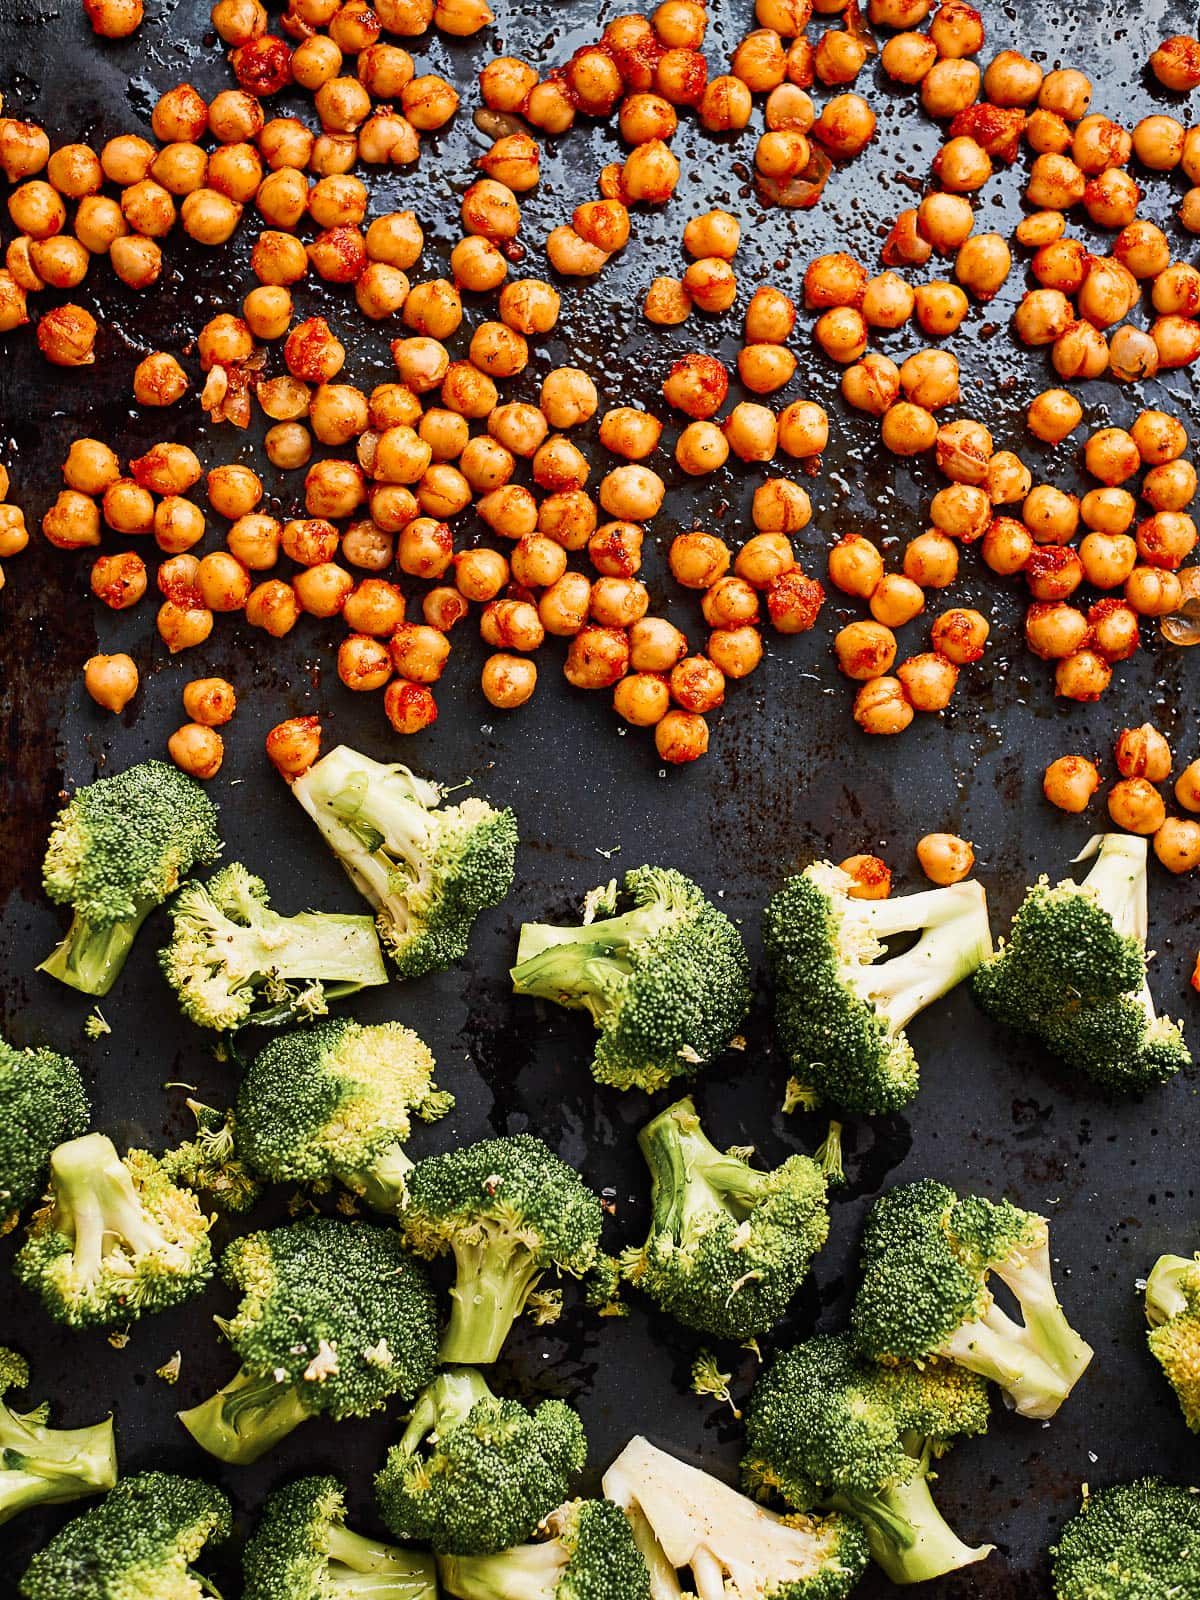 Broccoli and chickpeas on a baking sheet